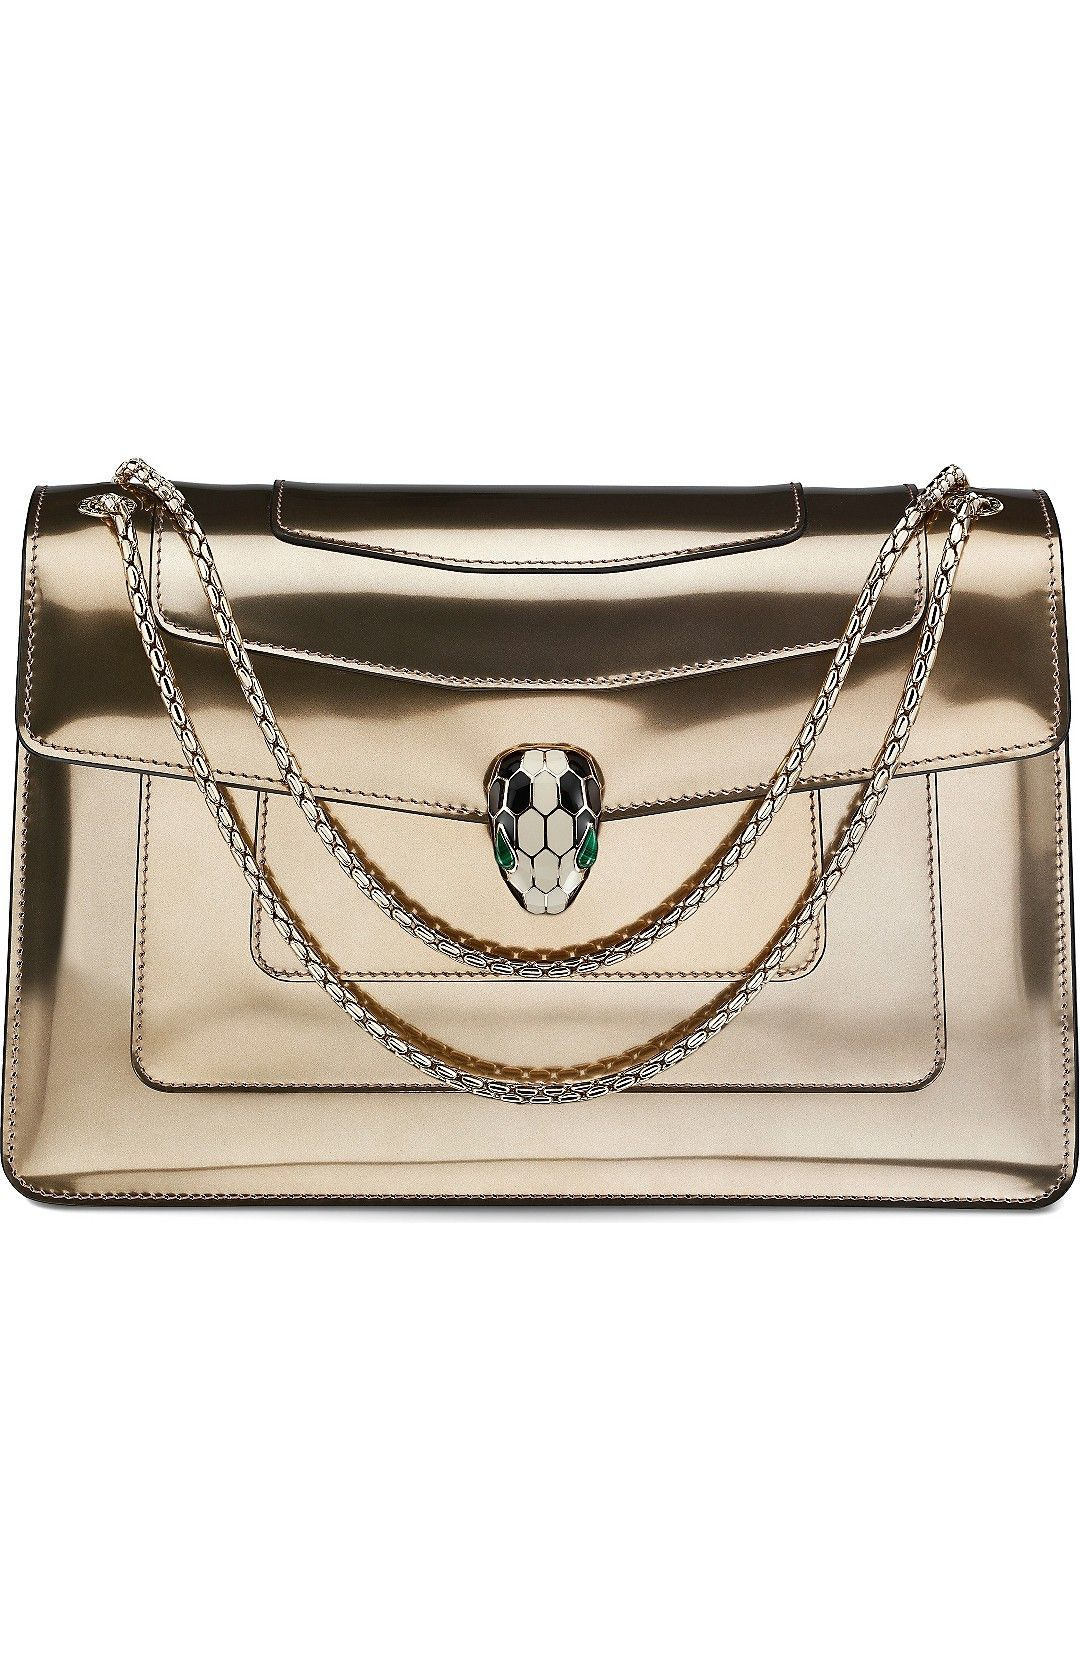 Serpenti forever leather shoulder bag leather shoulder bags